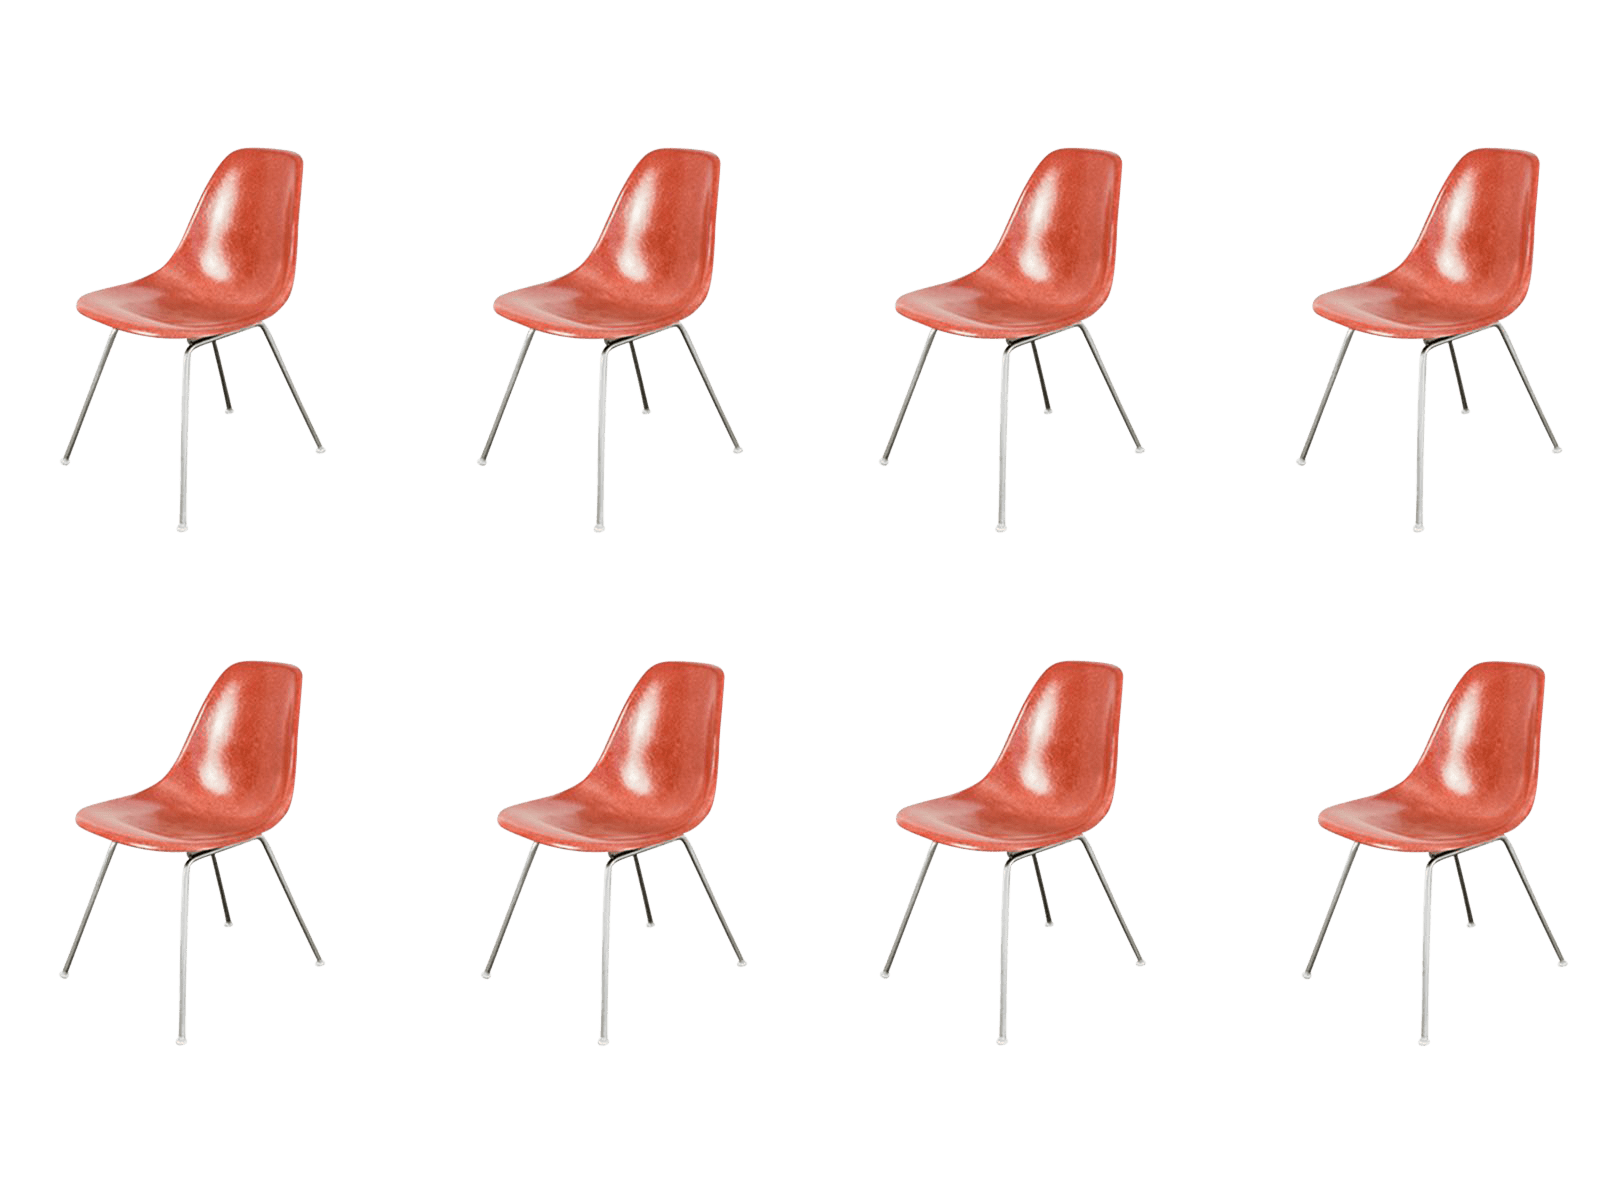 fiberglass shell chair folding travel high end 1960s eames terracotta decaso image 1 of 10